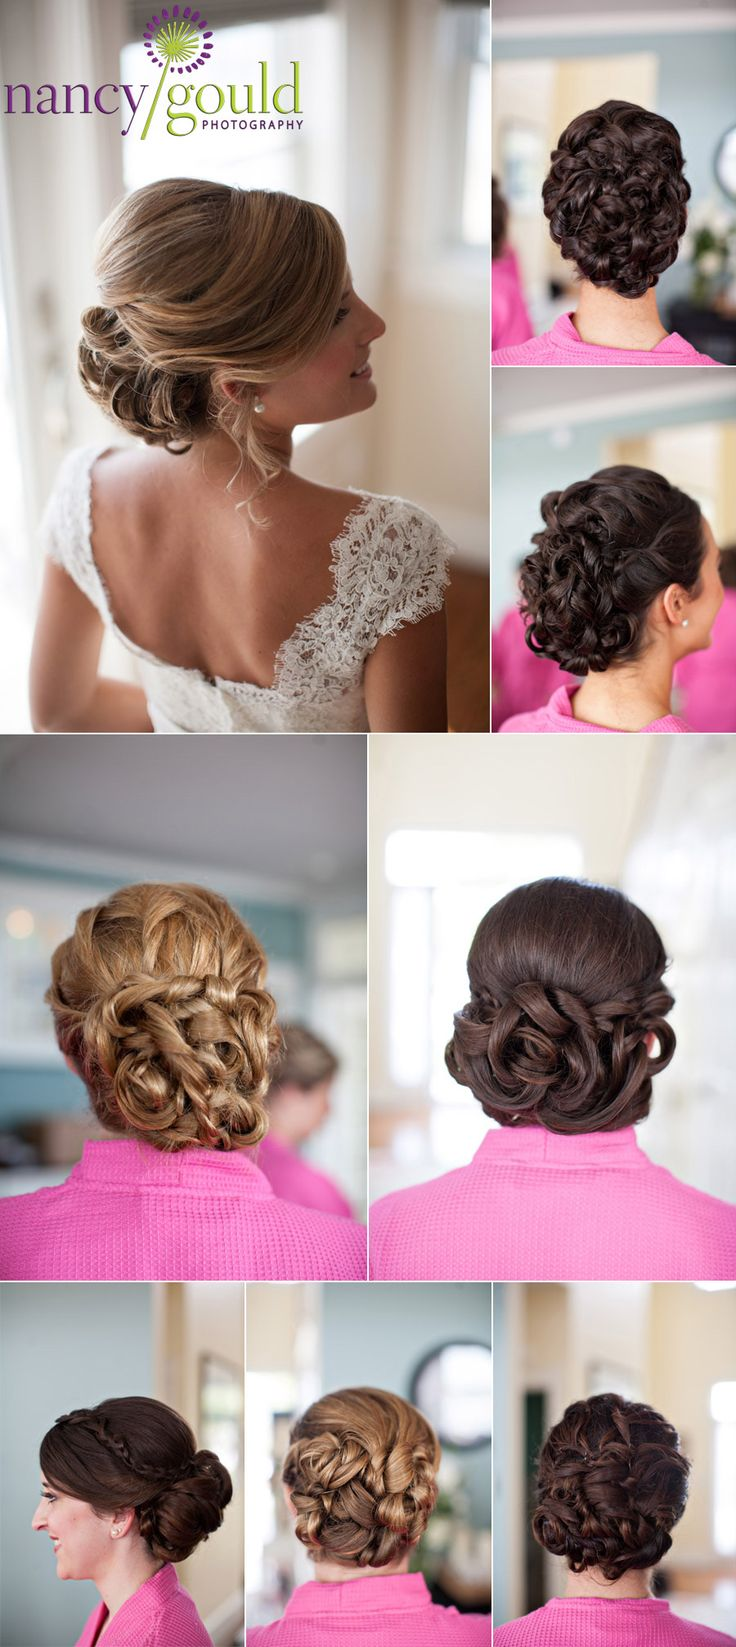 more great wedding hair from Lisa George!